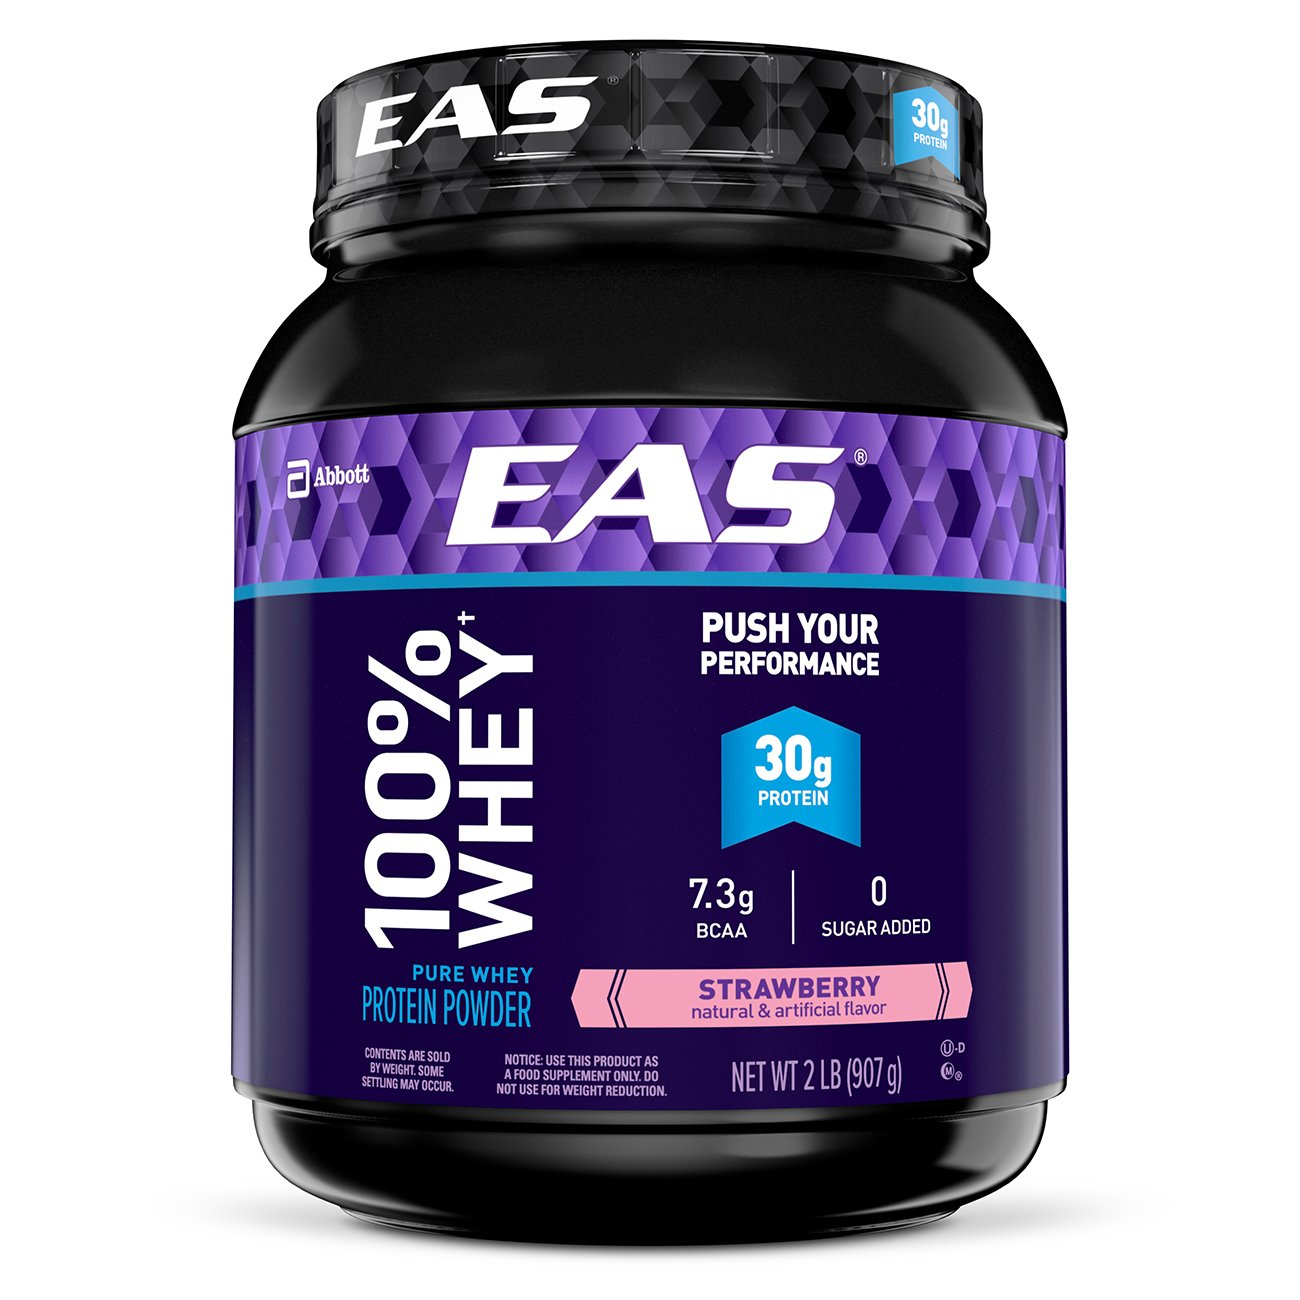 EAS 100% Pure Whey Protein Powder, 30g of Protein, Strawberry, 2 lb (Packaging May Vary)